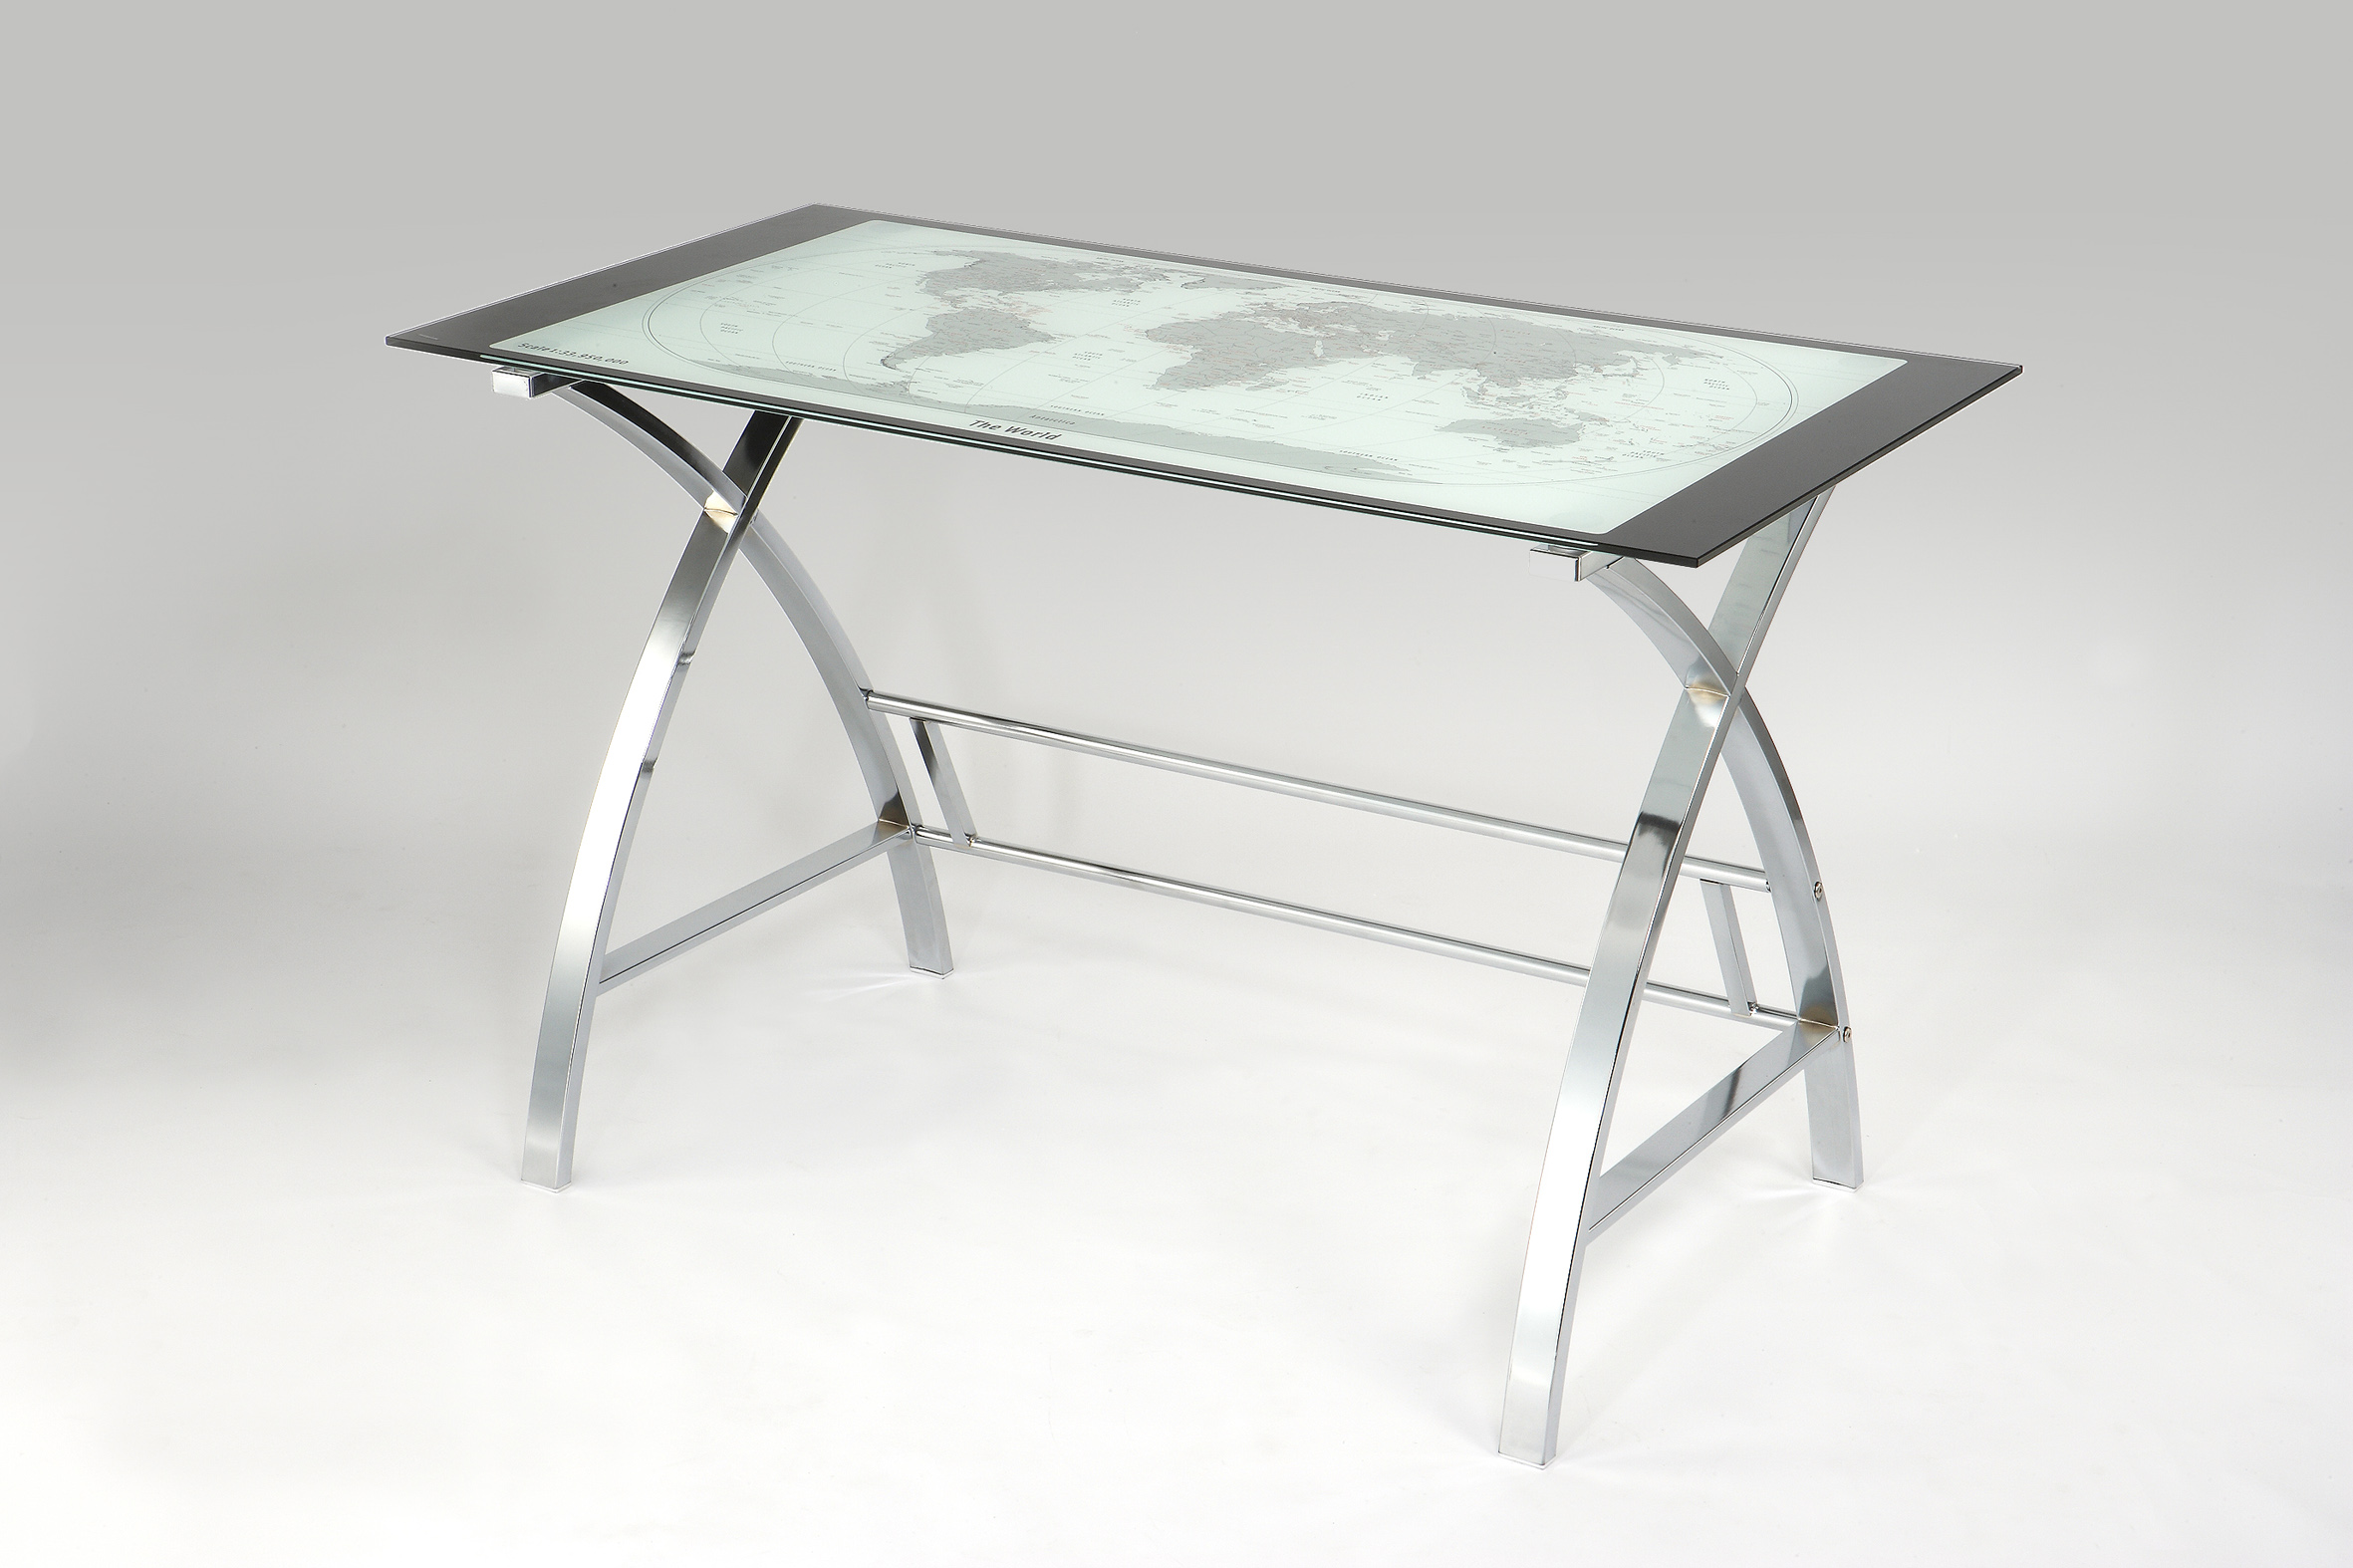 stainless steel chair hsn code folding hack world map printing curved x sided computer desk 224 00